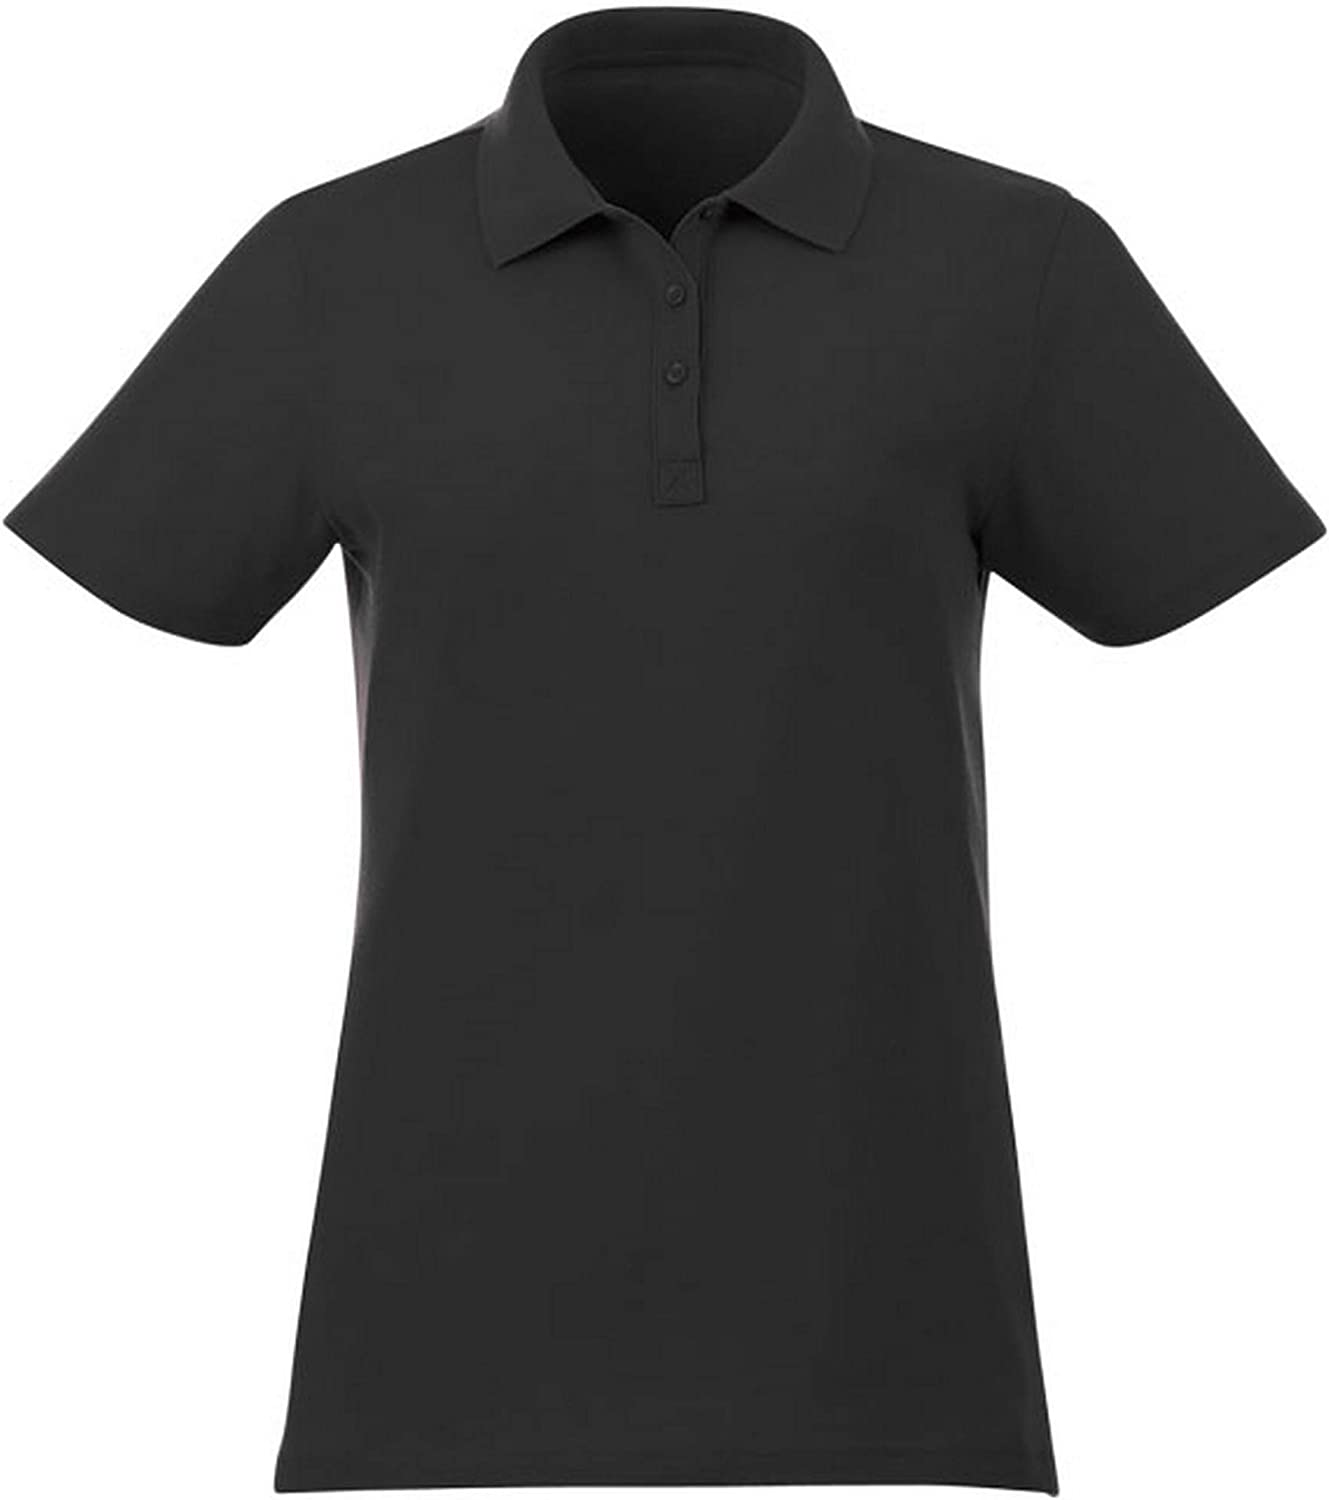 Elevate Liberty Womens/Ladies Private Label Short Sleeve Polo Shirt